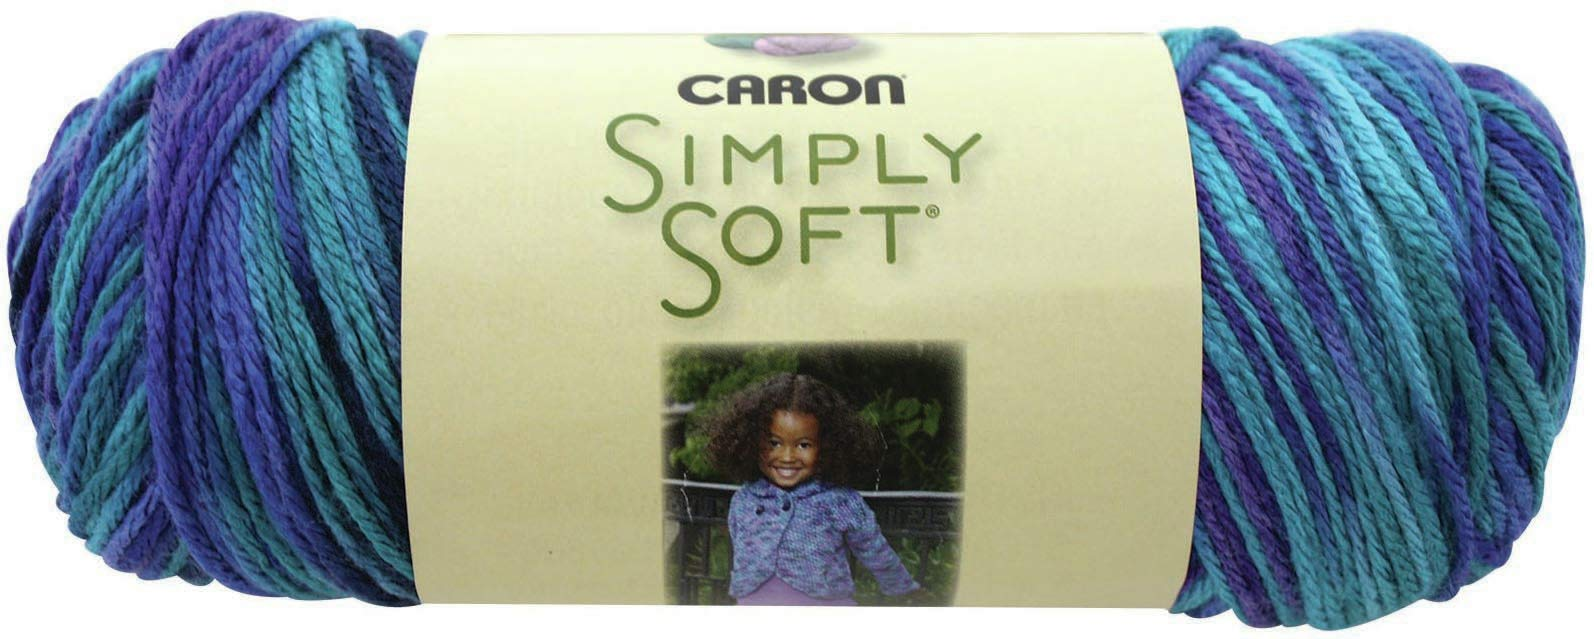 Caron 98064 Simply Soft Paints Yarn-Oceana, Multipack of 12, Pack by Caron (Image #2)